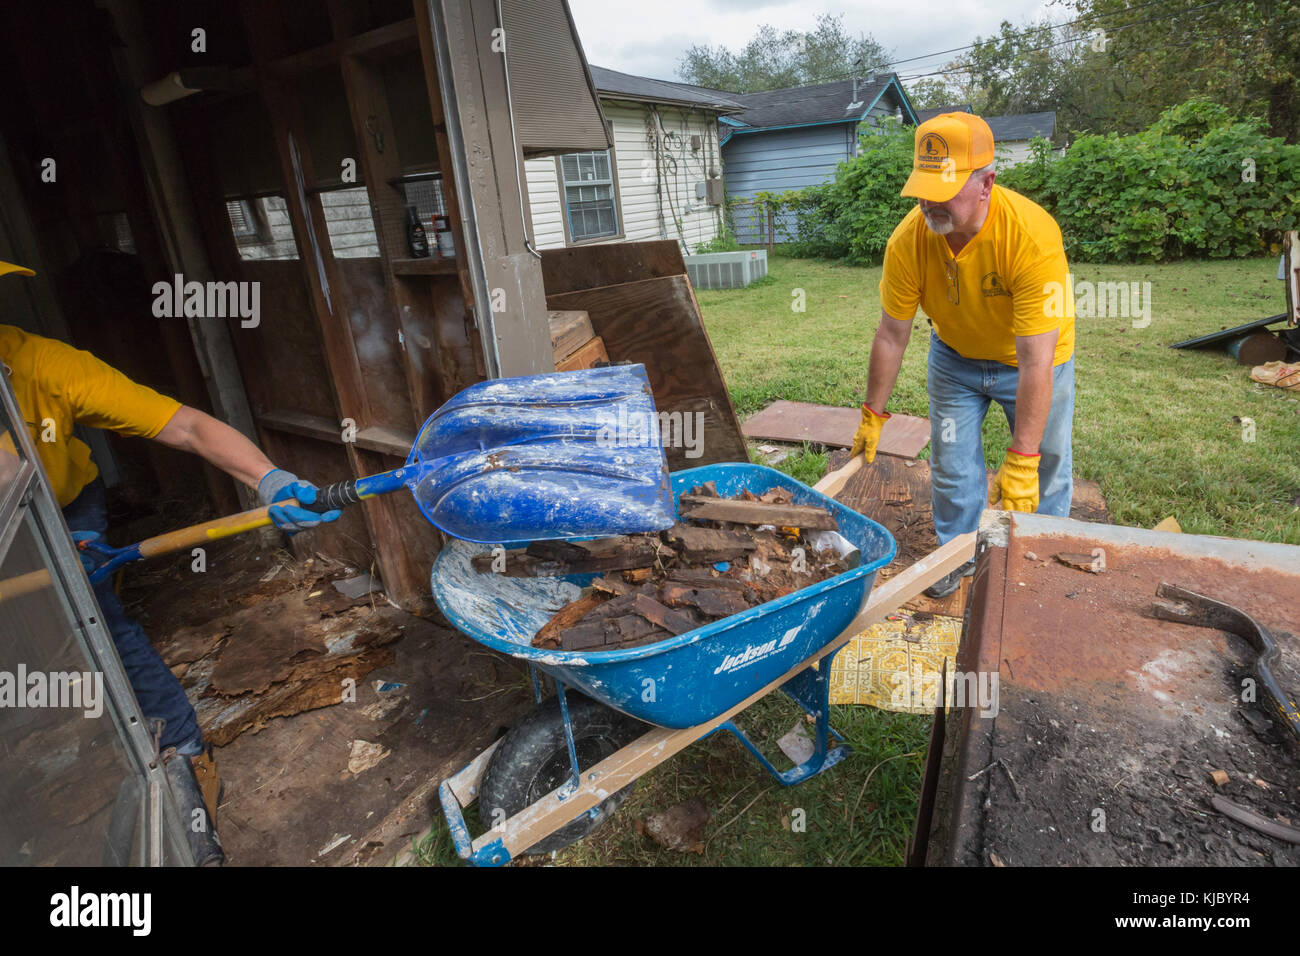 Houston, Texas - Oklahoma volunteers from the Southern Baptist Convention clean debris from a home that was flooded - Stock Image